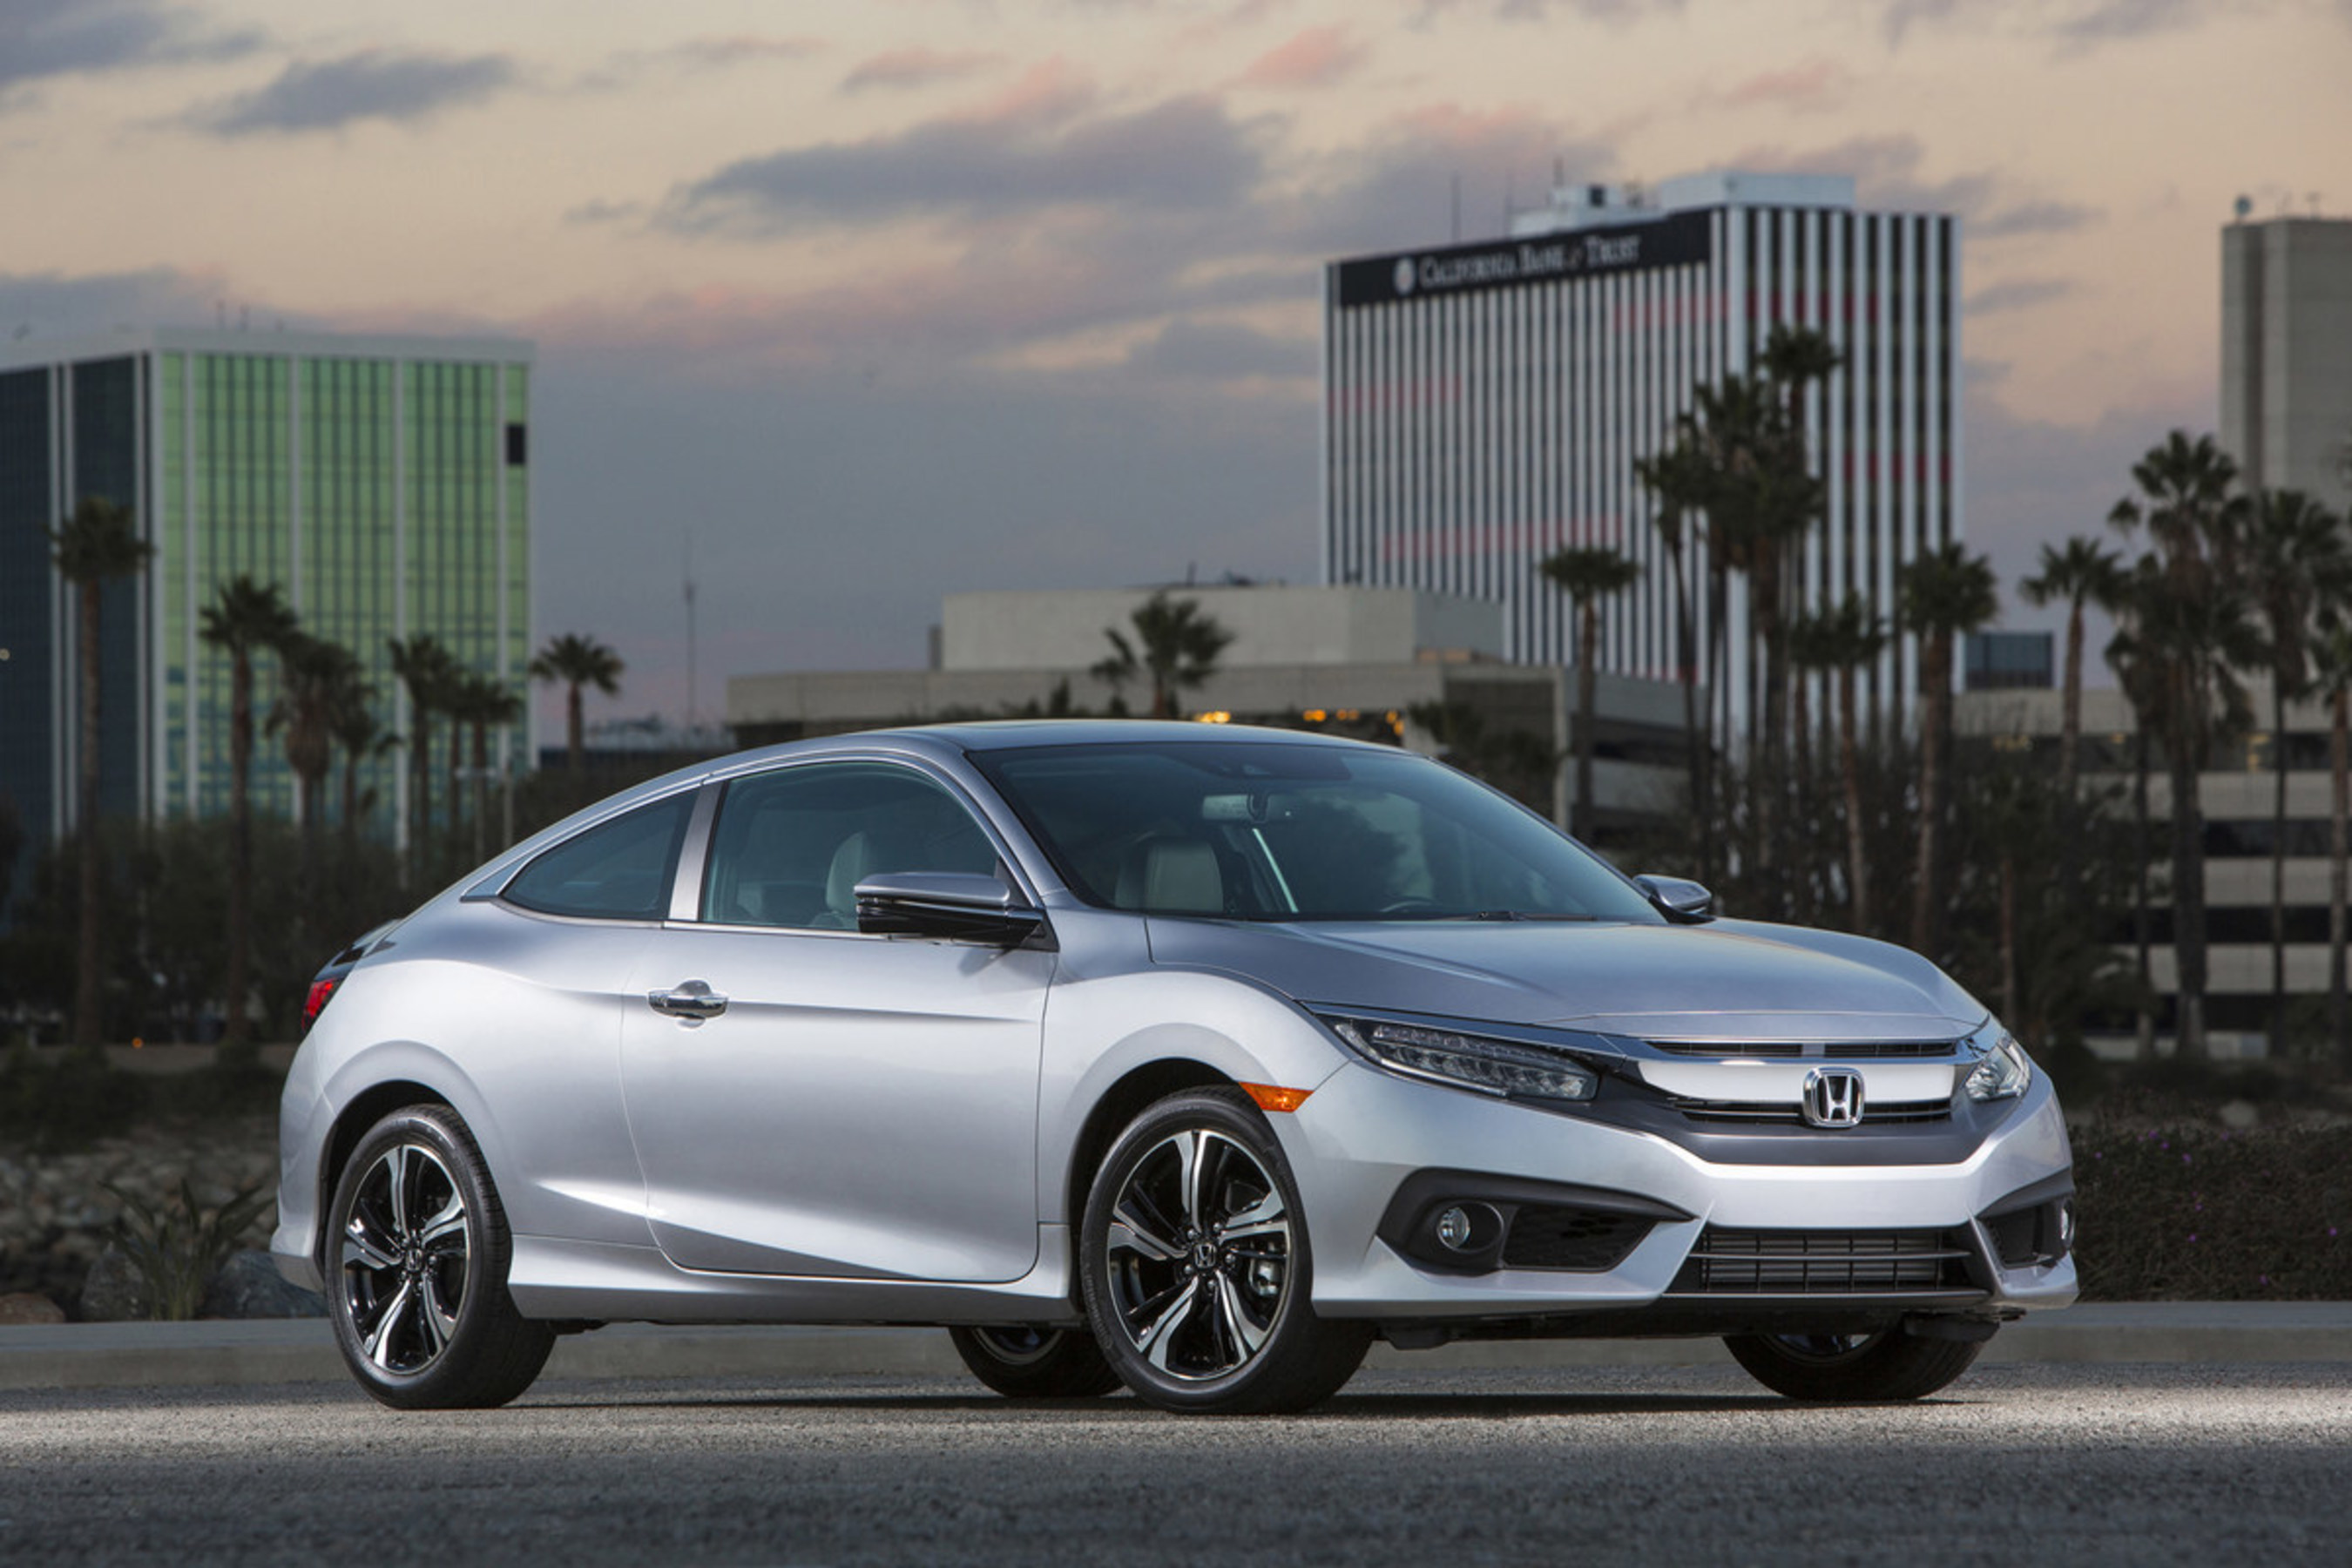 """2017 Honda Civic Named """"Overall Best Buy of the Year"""" by Experts at Kelley Blue Book"""